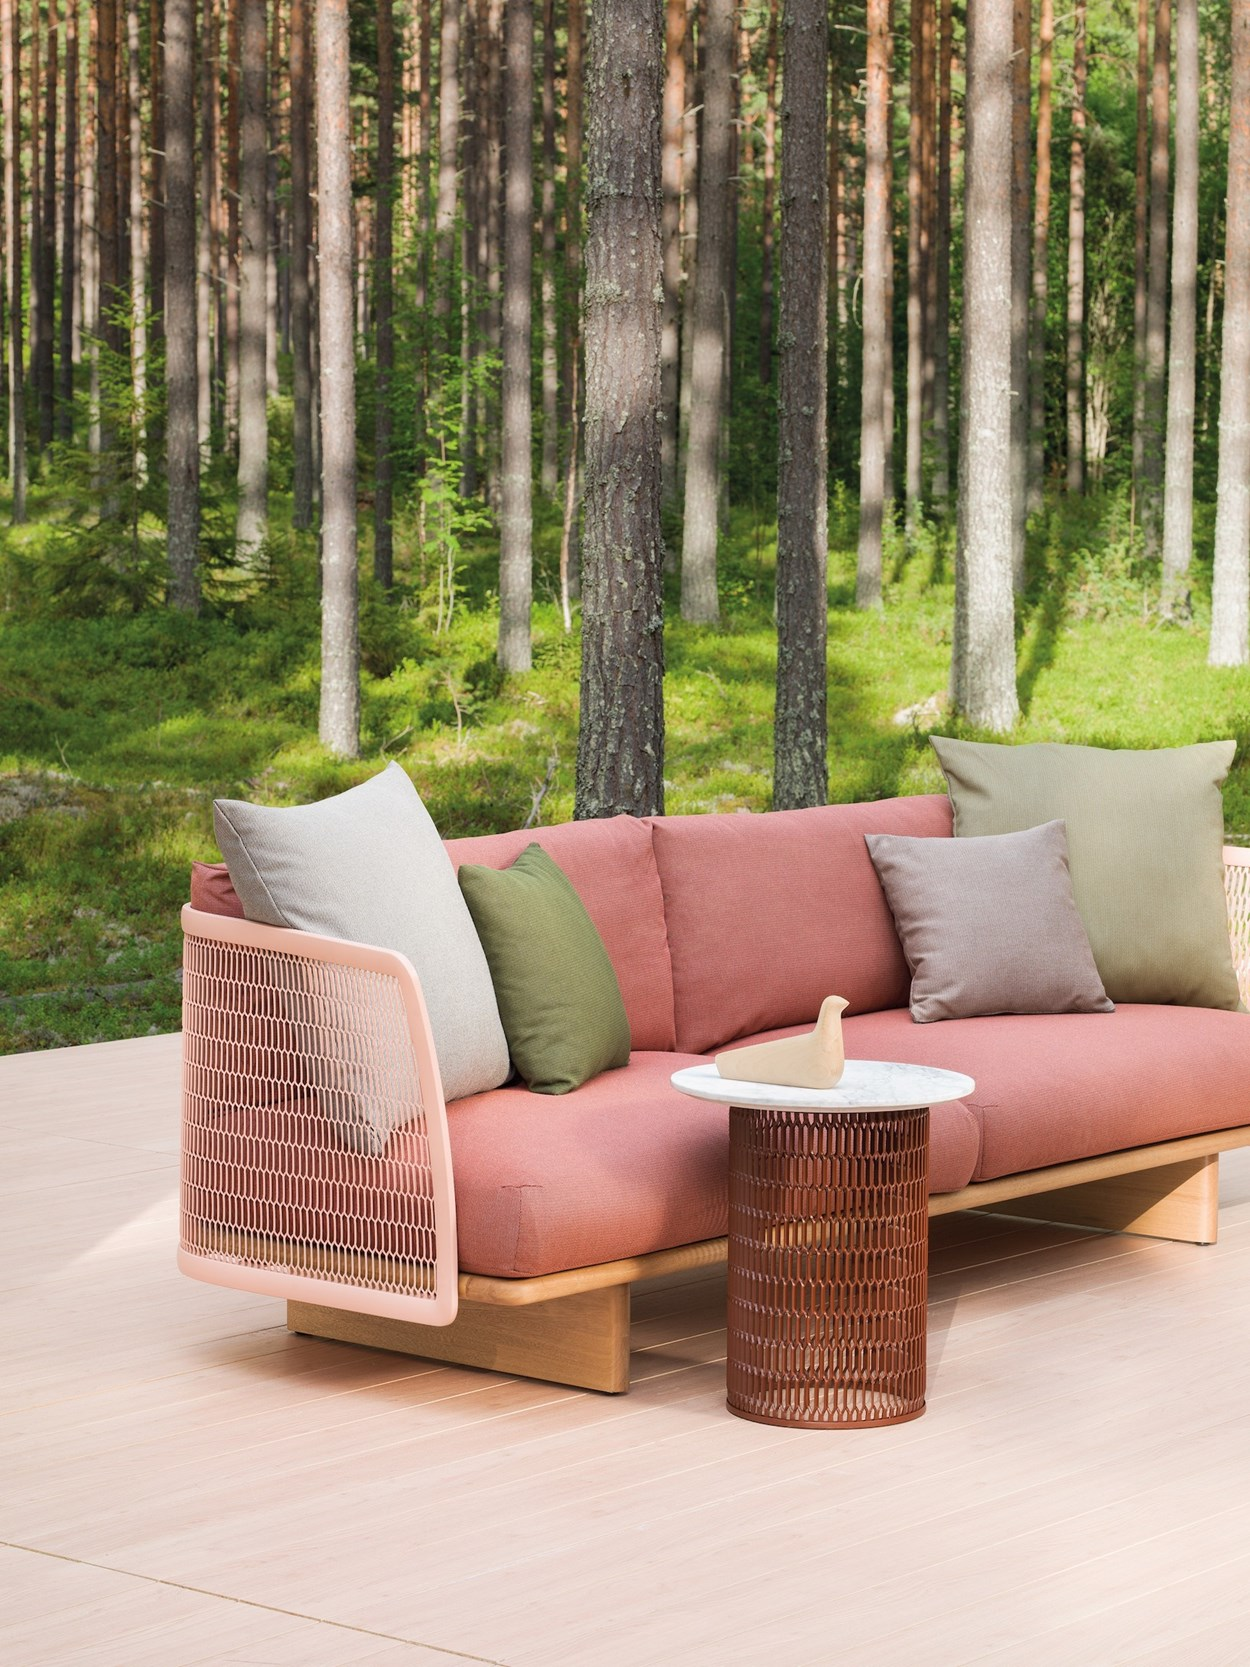 kettal-mesh-outdoor-sofa-2.jpg